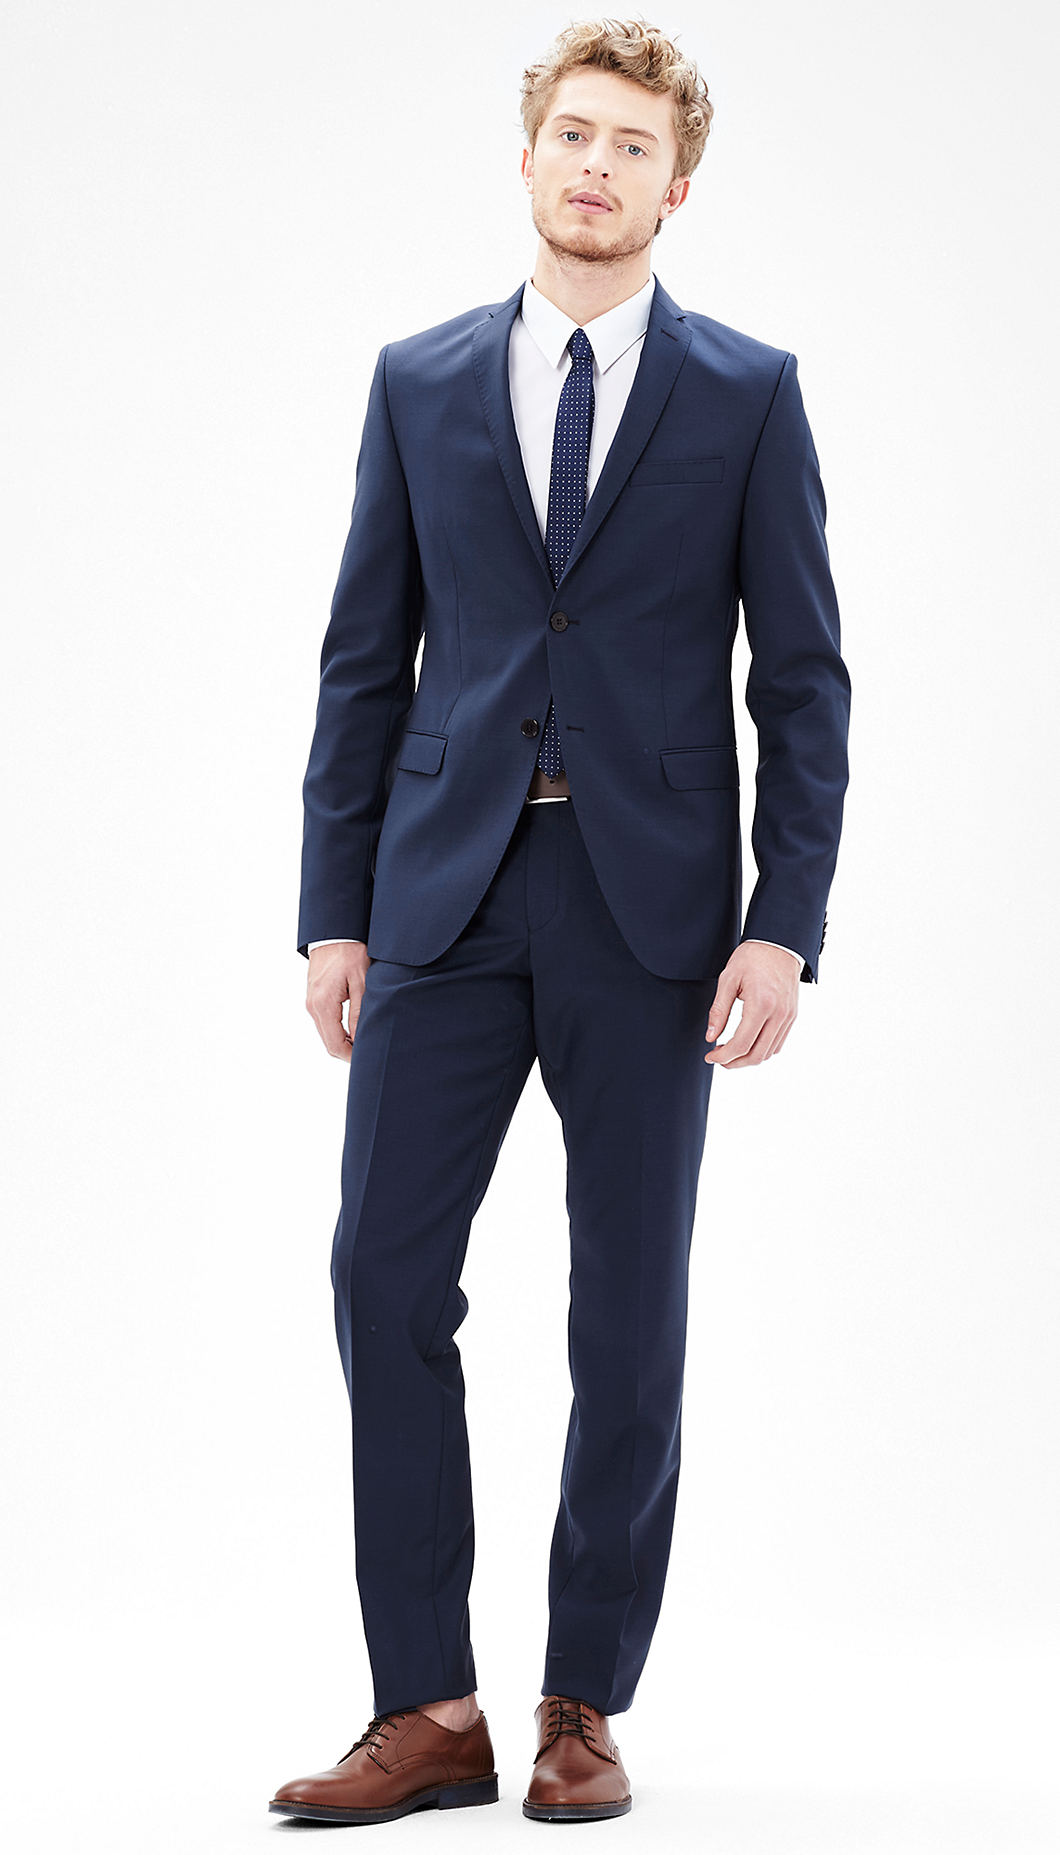 s.Oliver Pantsuits buy slim: tailored suit in pure new wool | s.oliver shop NOGEPVE